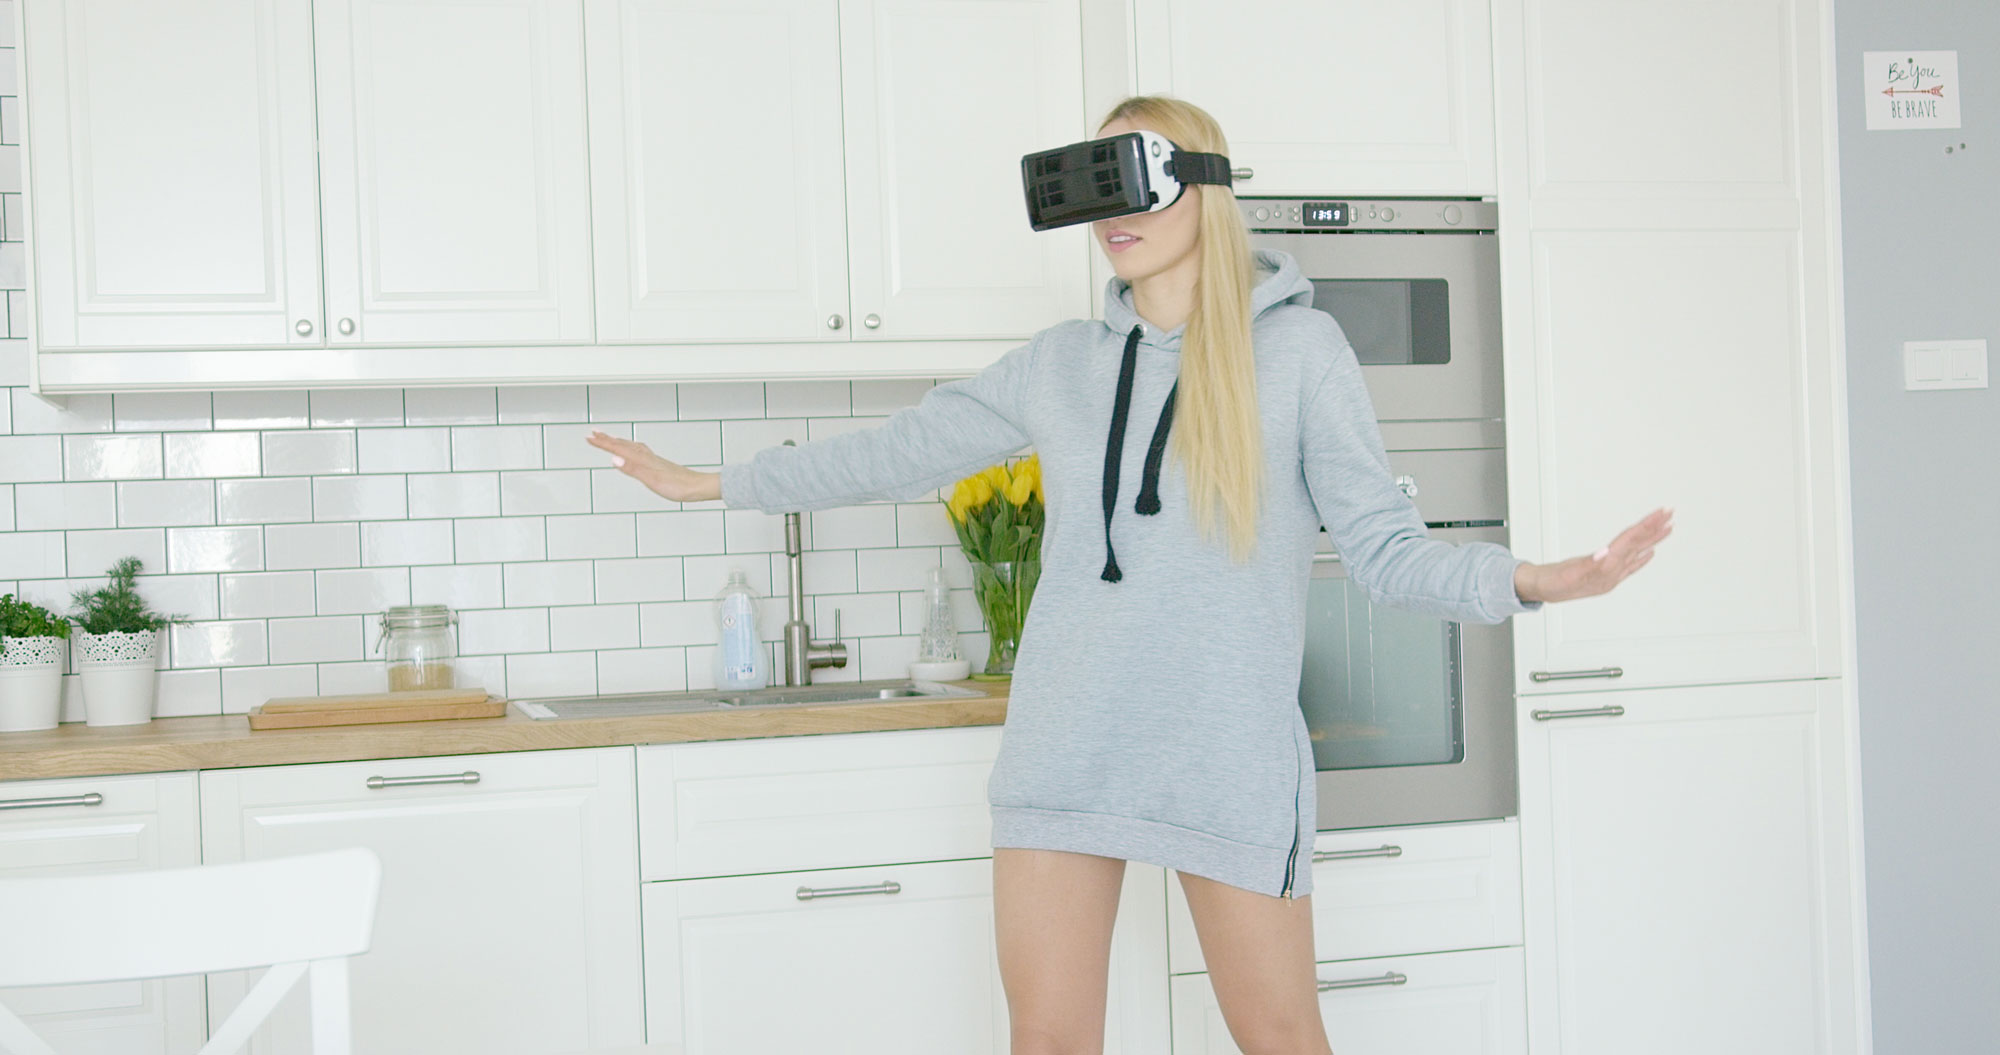 woman-wearing-vr-headset-PZJJ4YR